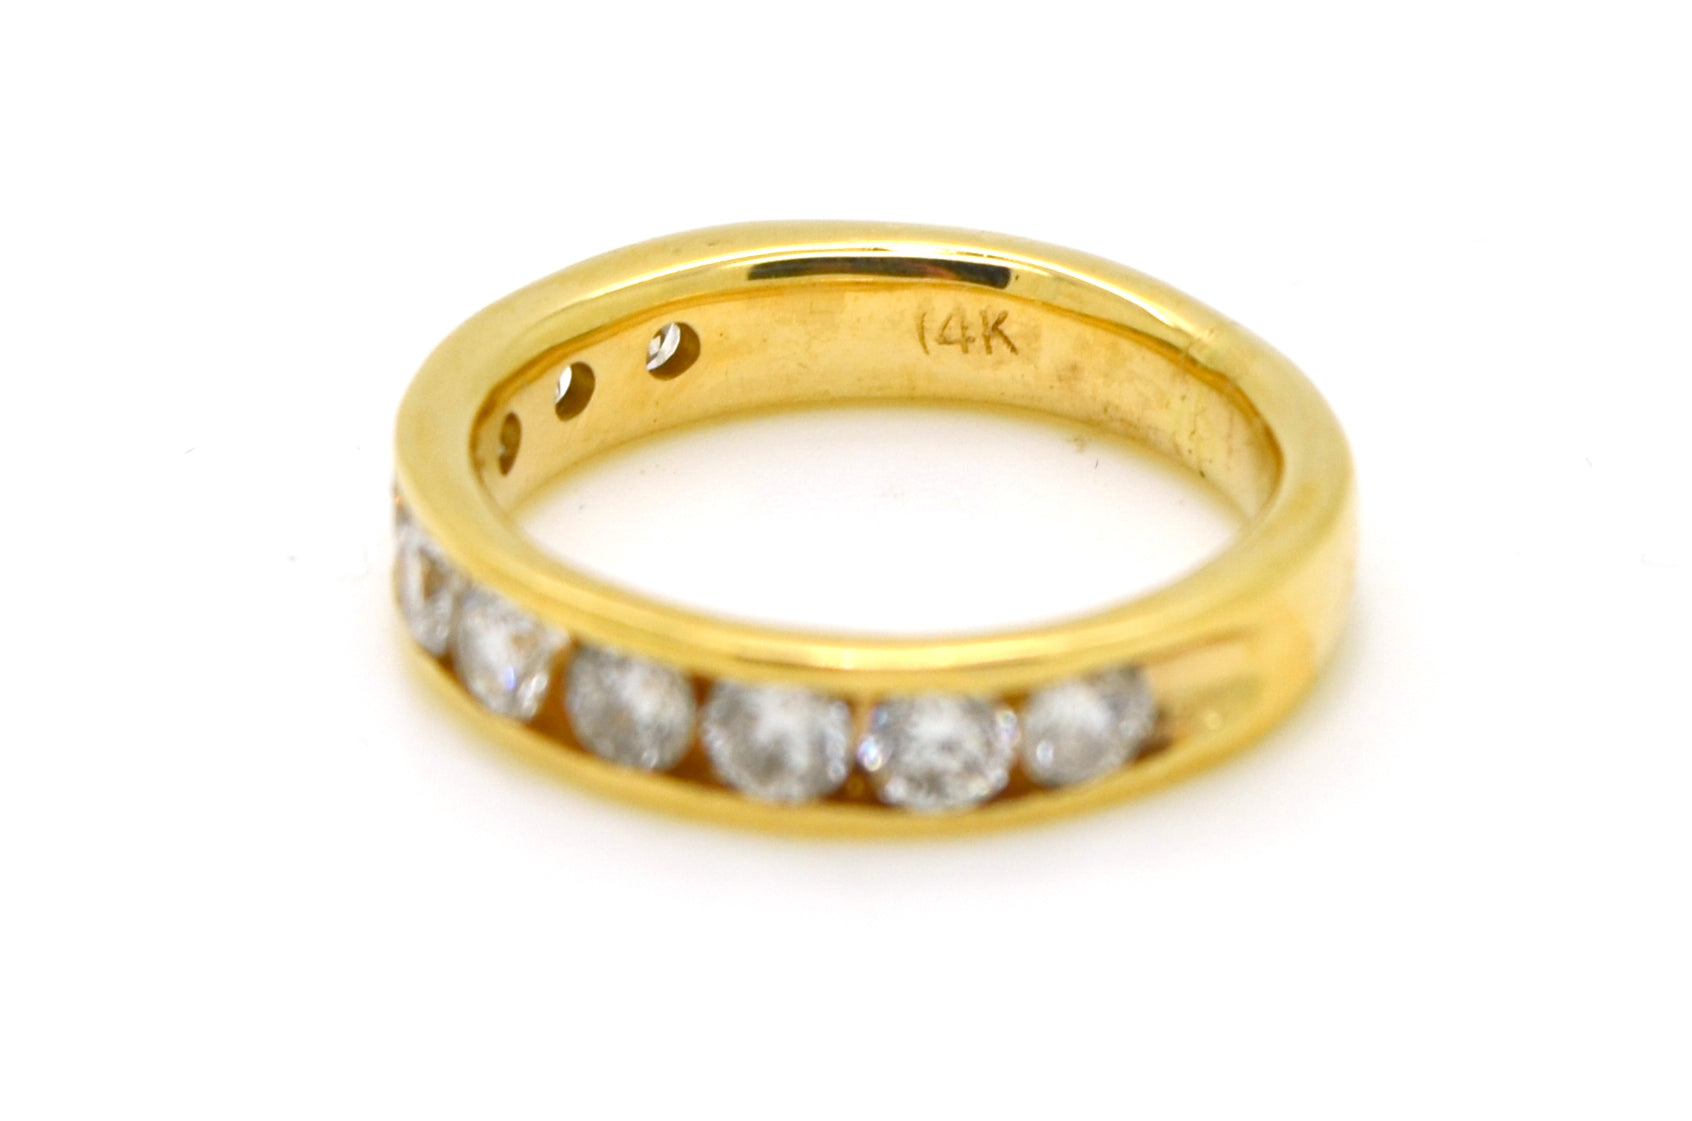 14k Yellow Gold Channel Round Diamond Band Ring - 1.30 ct. total - Size 5